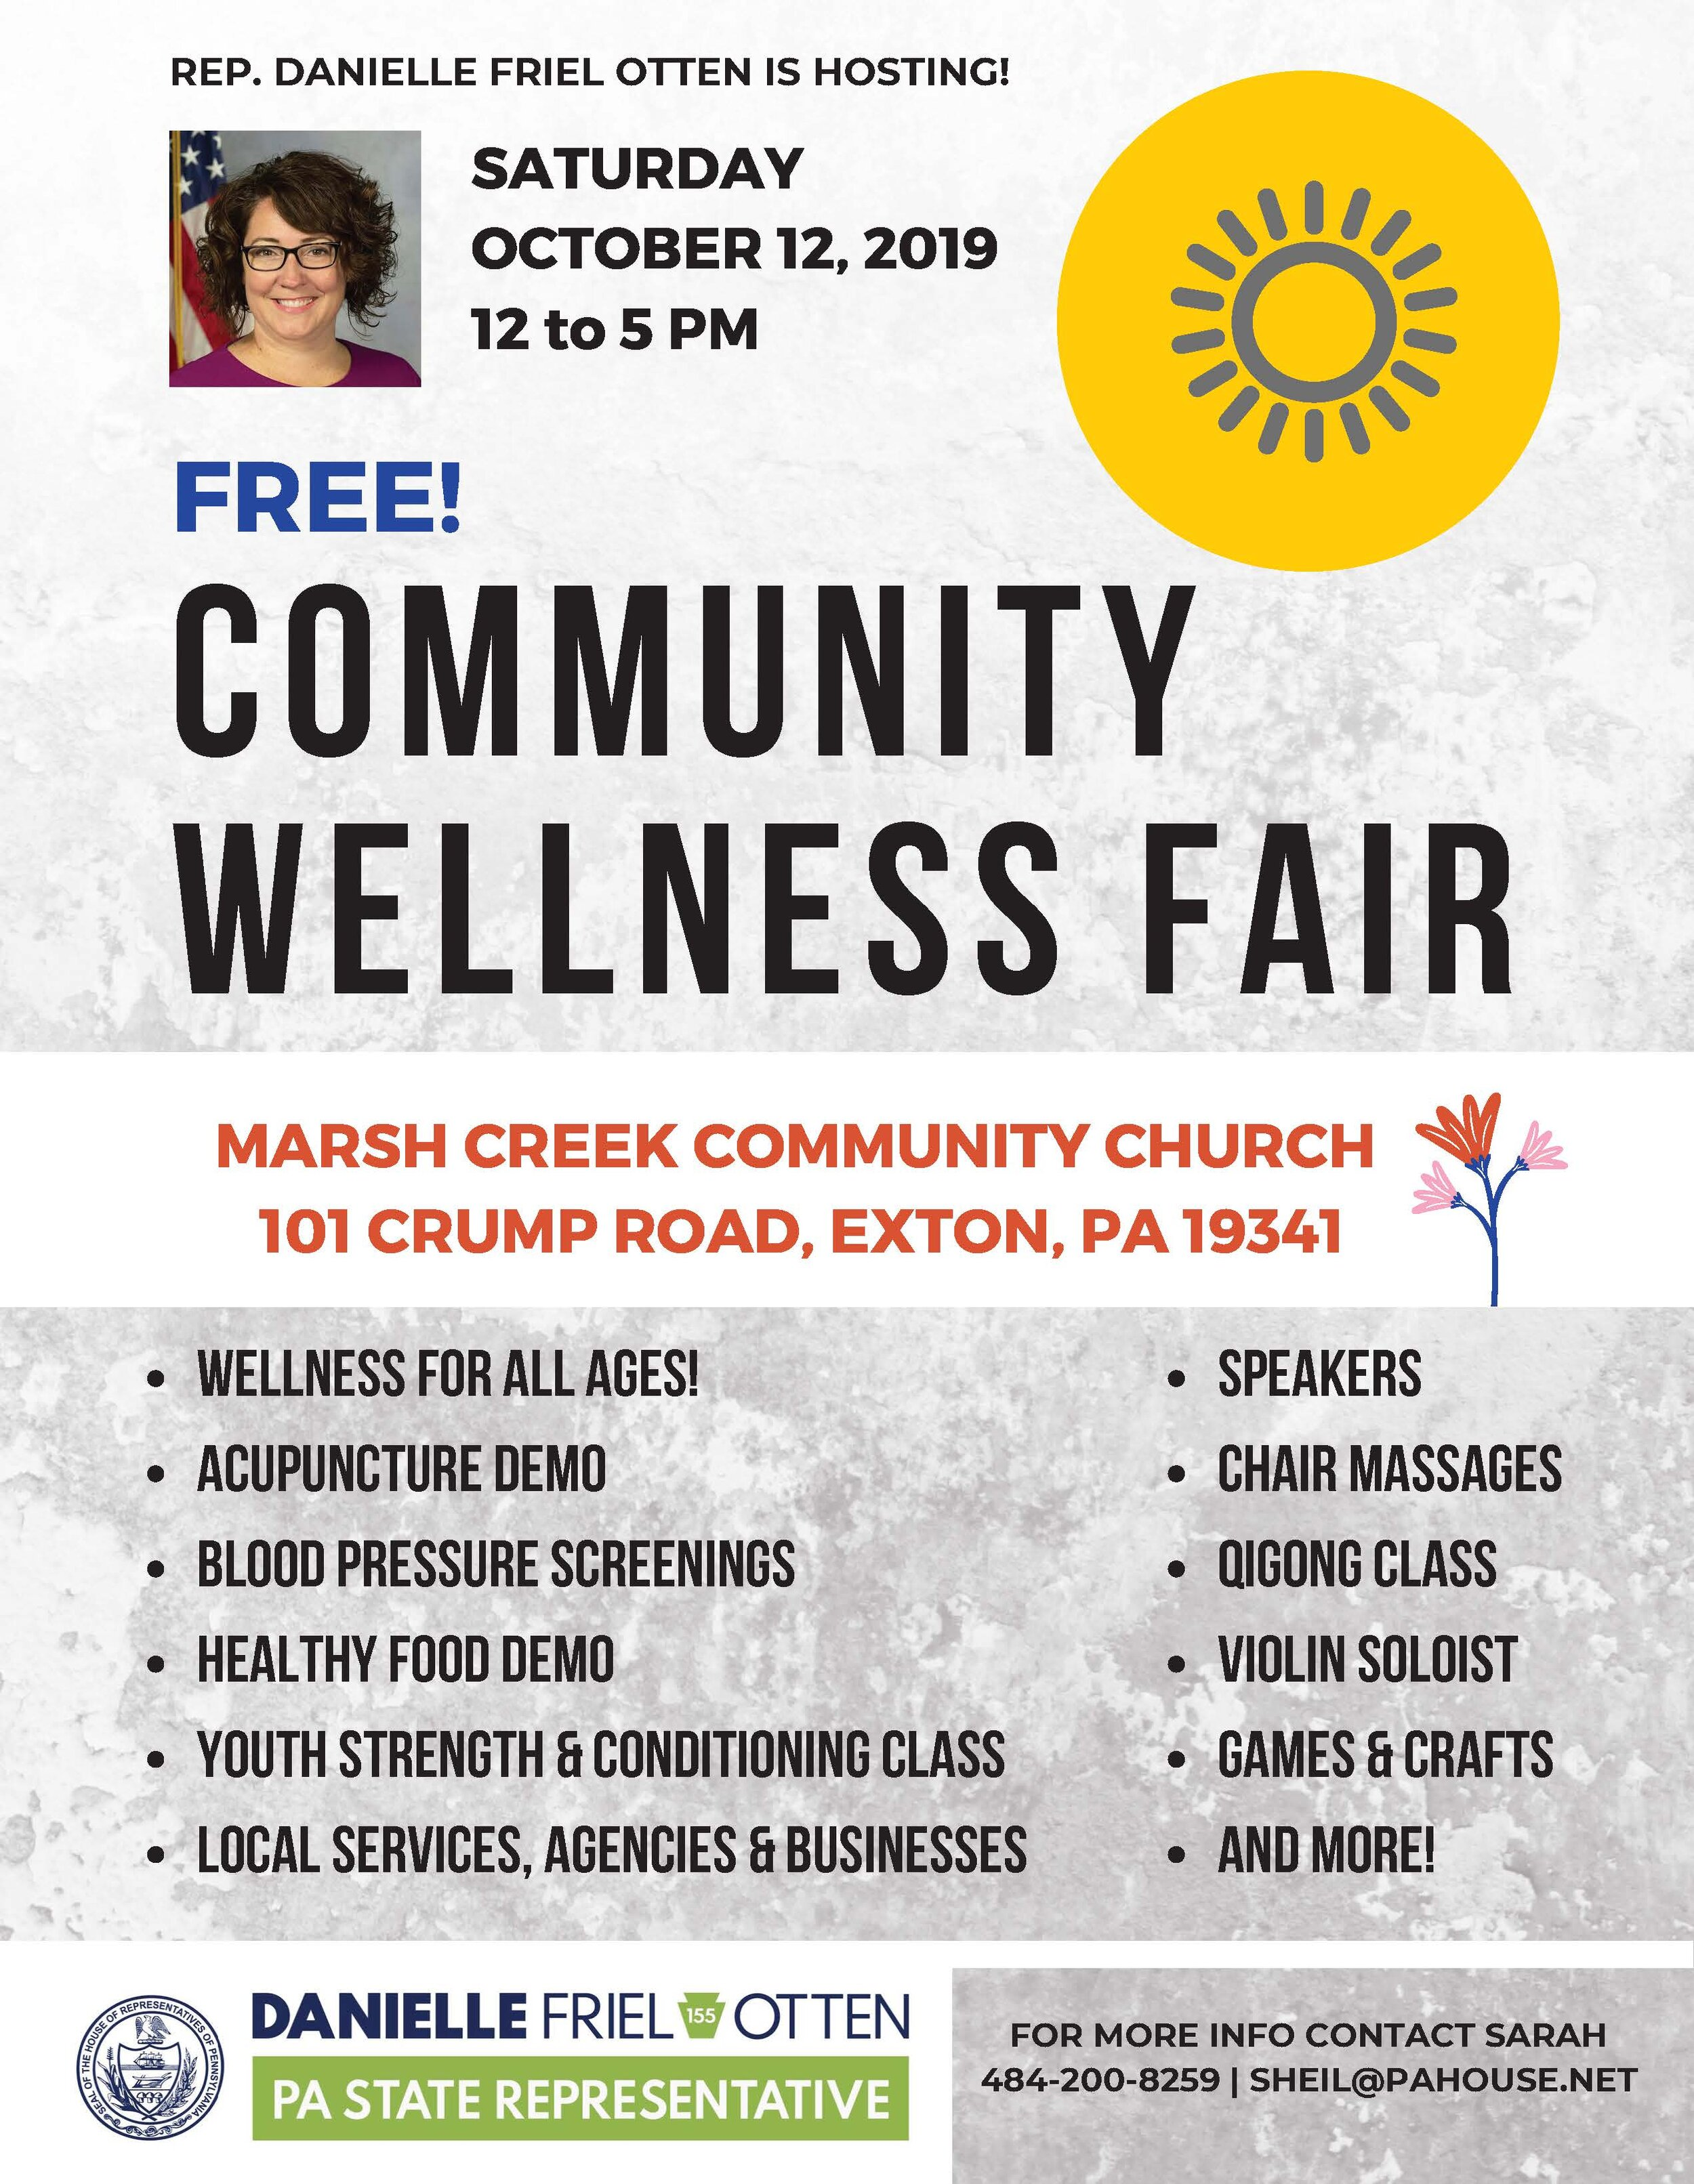 Community Wellness Fair Flyer_10-12-19.jpg